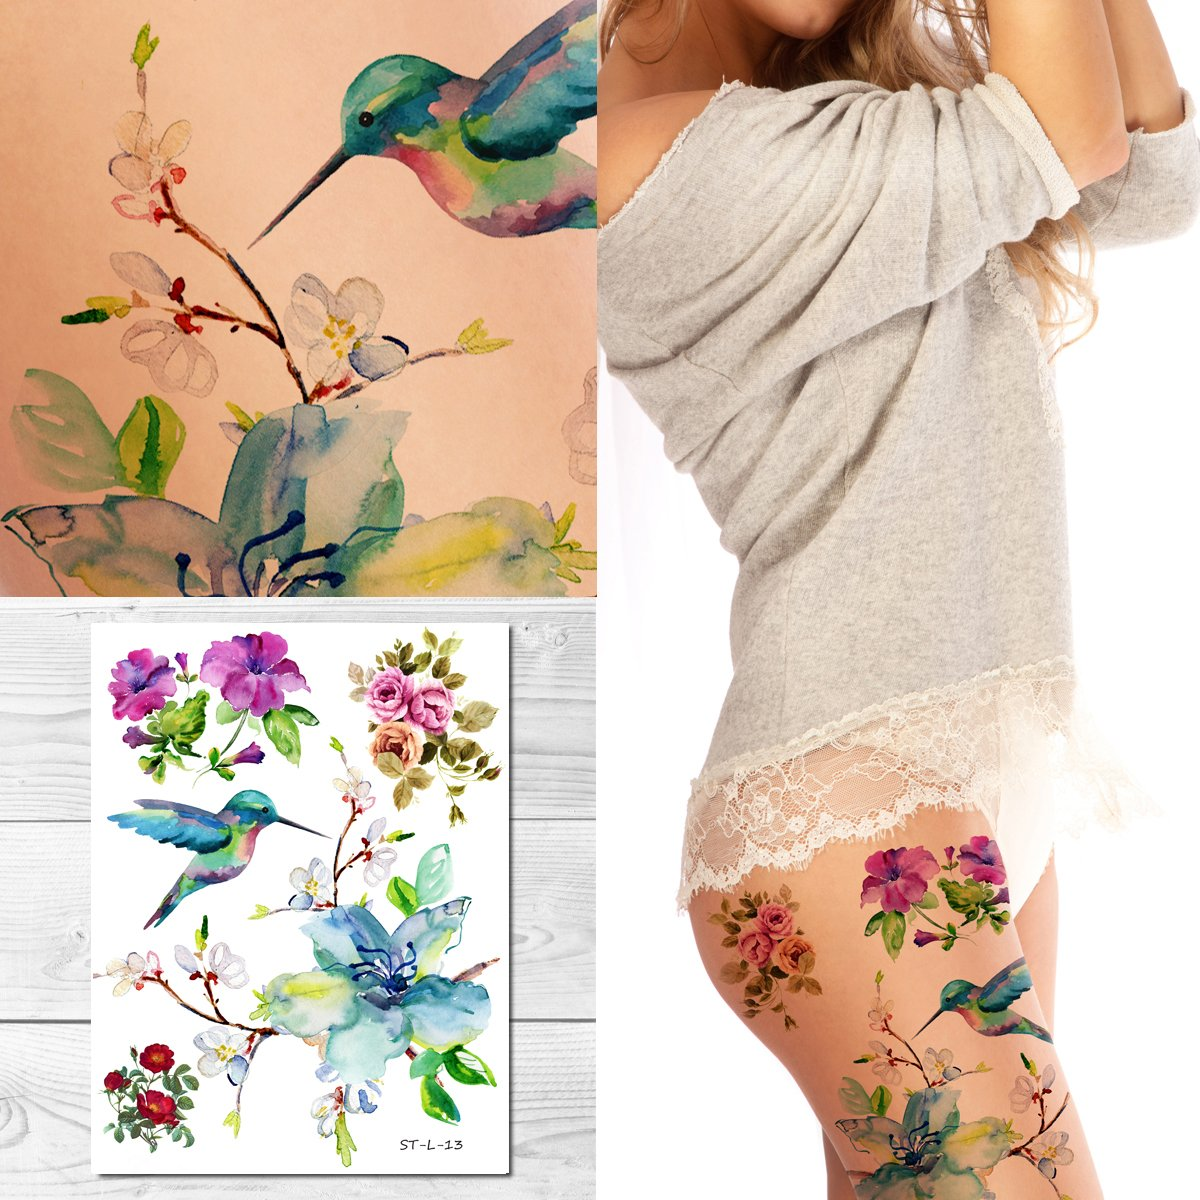 f952ea34aa188 Amazon.com : Supperb Mix Flower Temporary Tattoos Ii/6-pack Floral ...